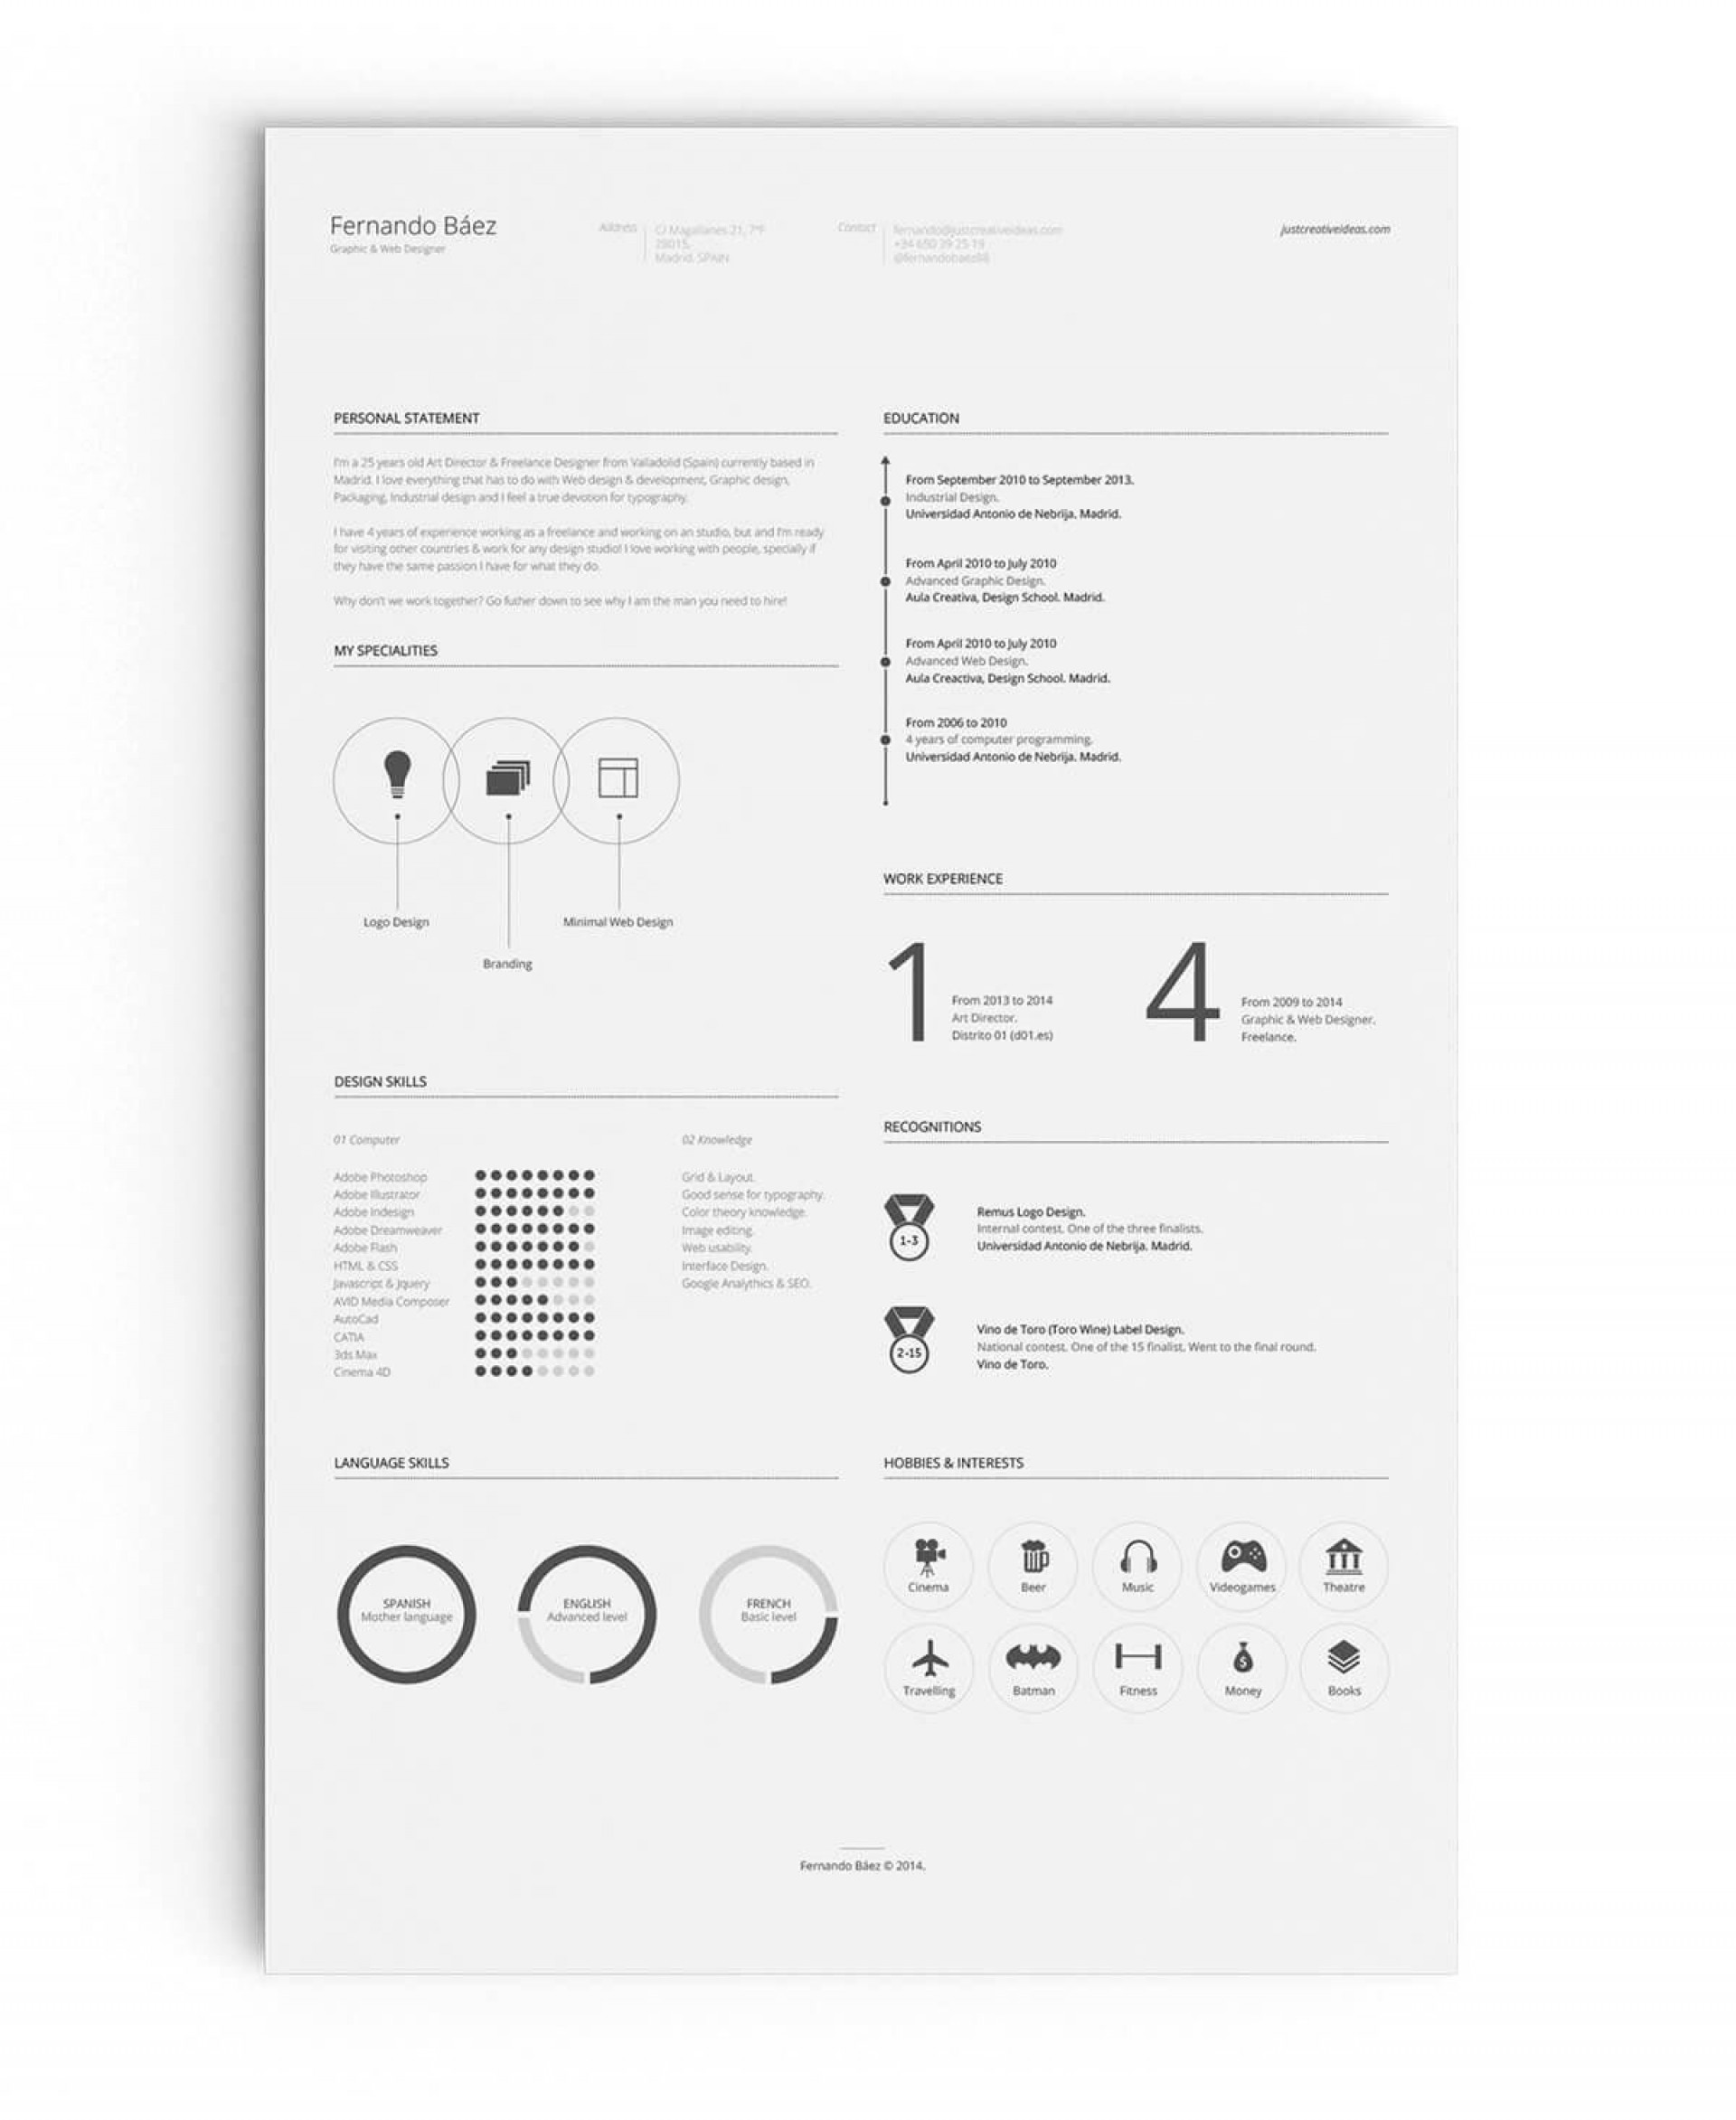 008 Awesome Free Student Resume Template Example  Templates Microsoft Word Australia High School1920